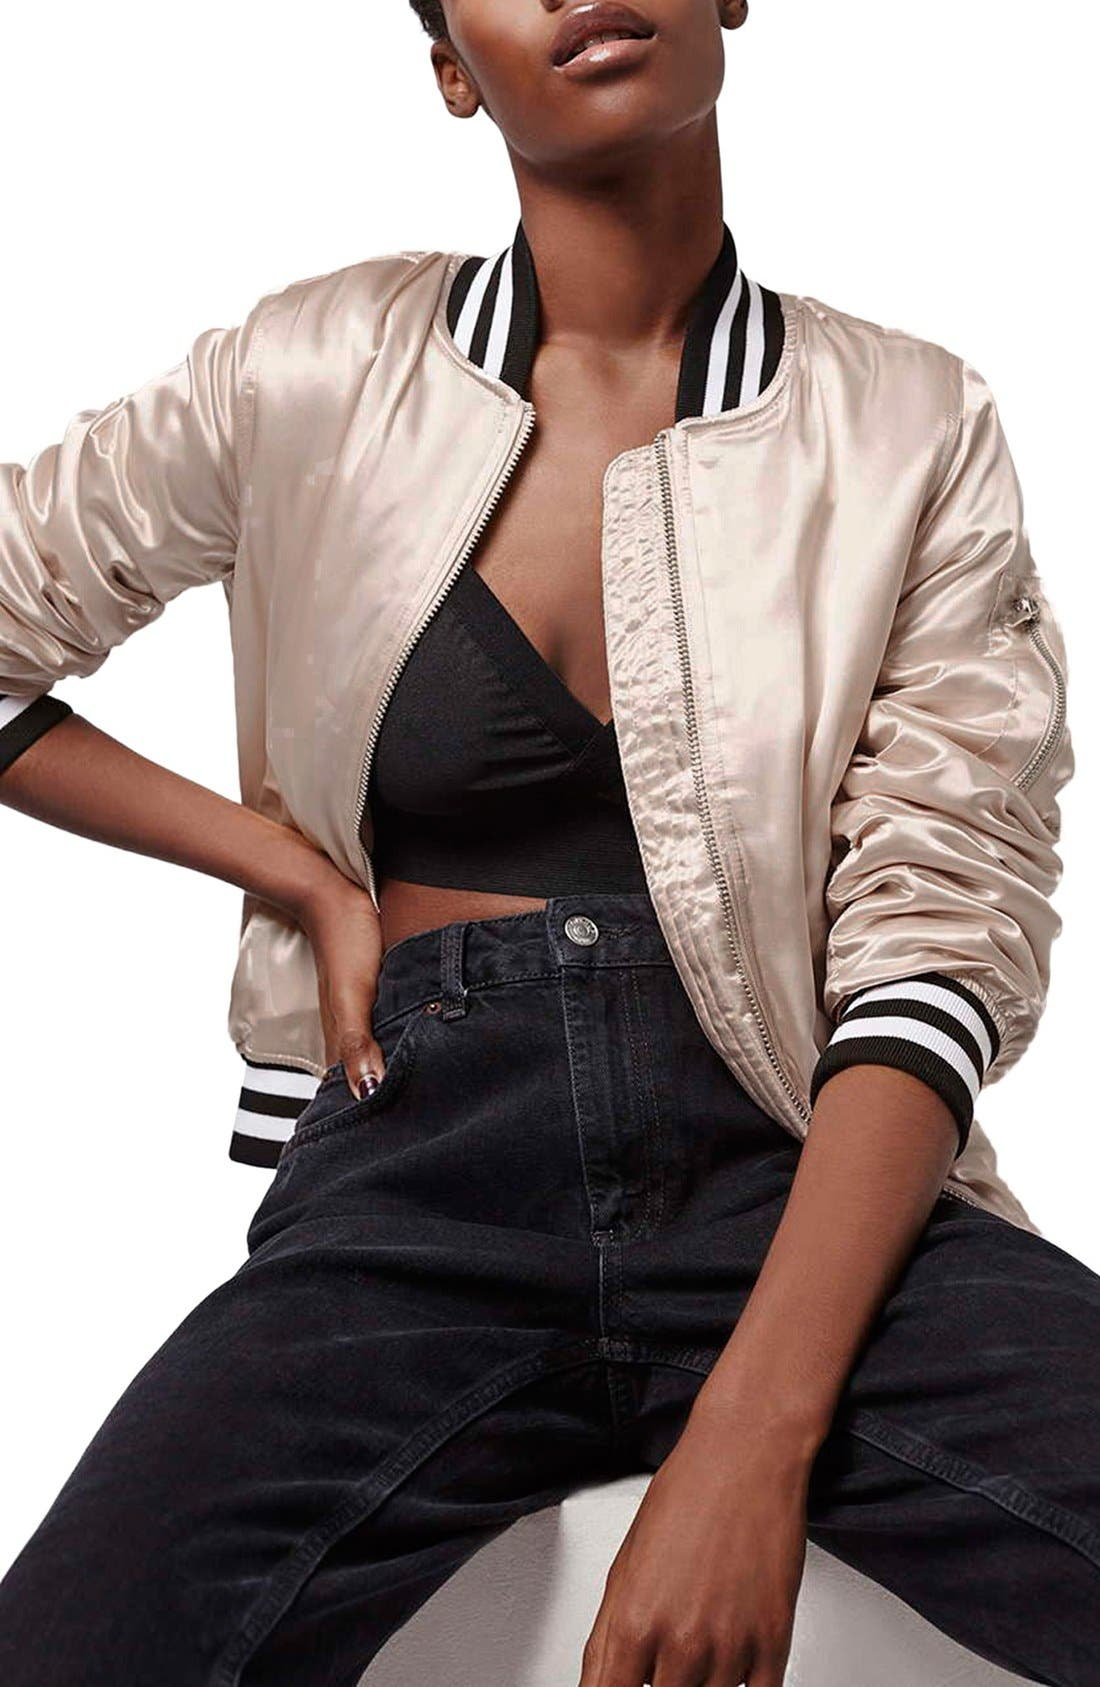 'MA1' Shiny Bomber Jacket,                         Main,                         color, Pale Pink Multi